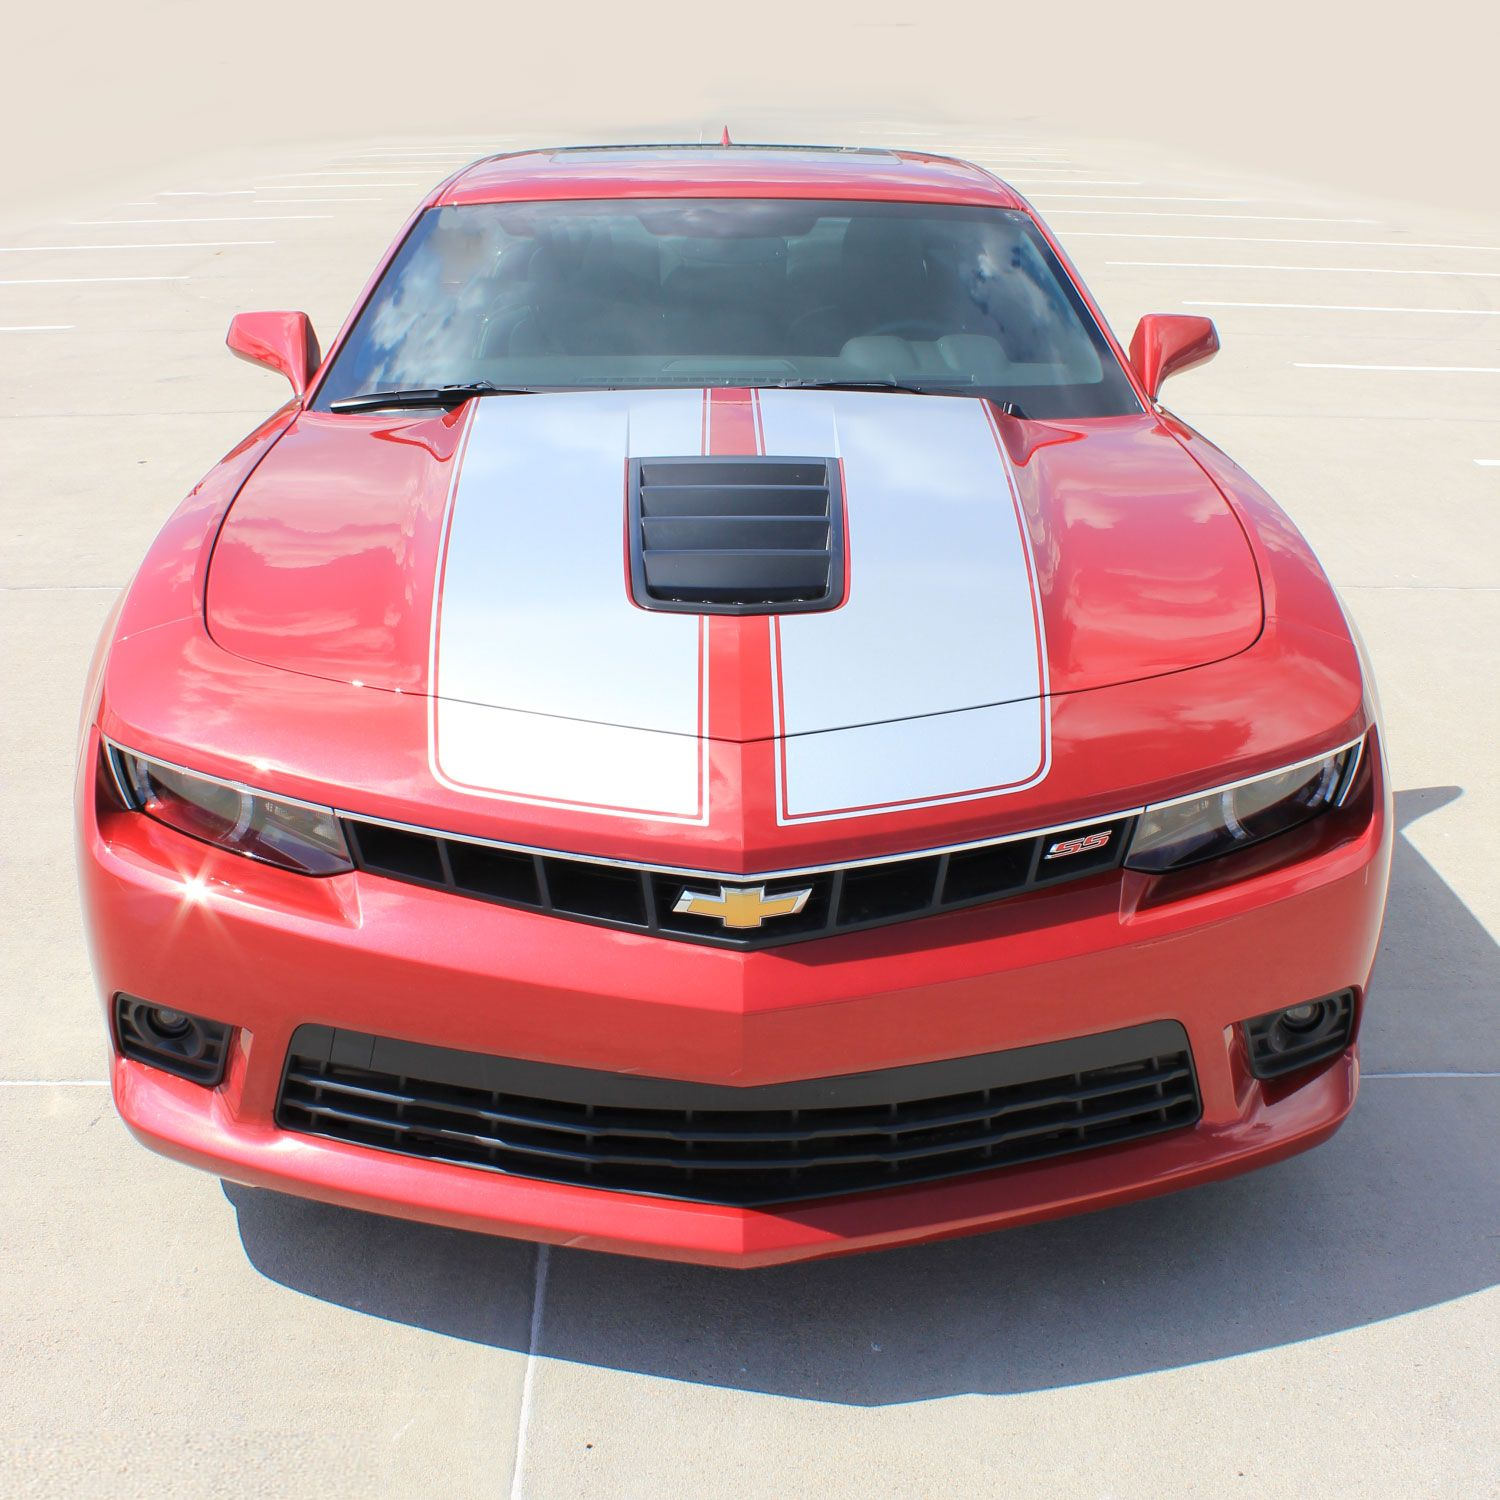 2014 2015 Chevy Camaro Racing Stripes S Sport Oem Factory Style Ss Rally Hood Vinyl Graphics For Ss Models Only